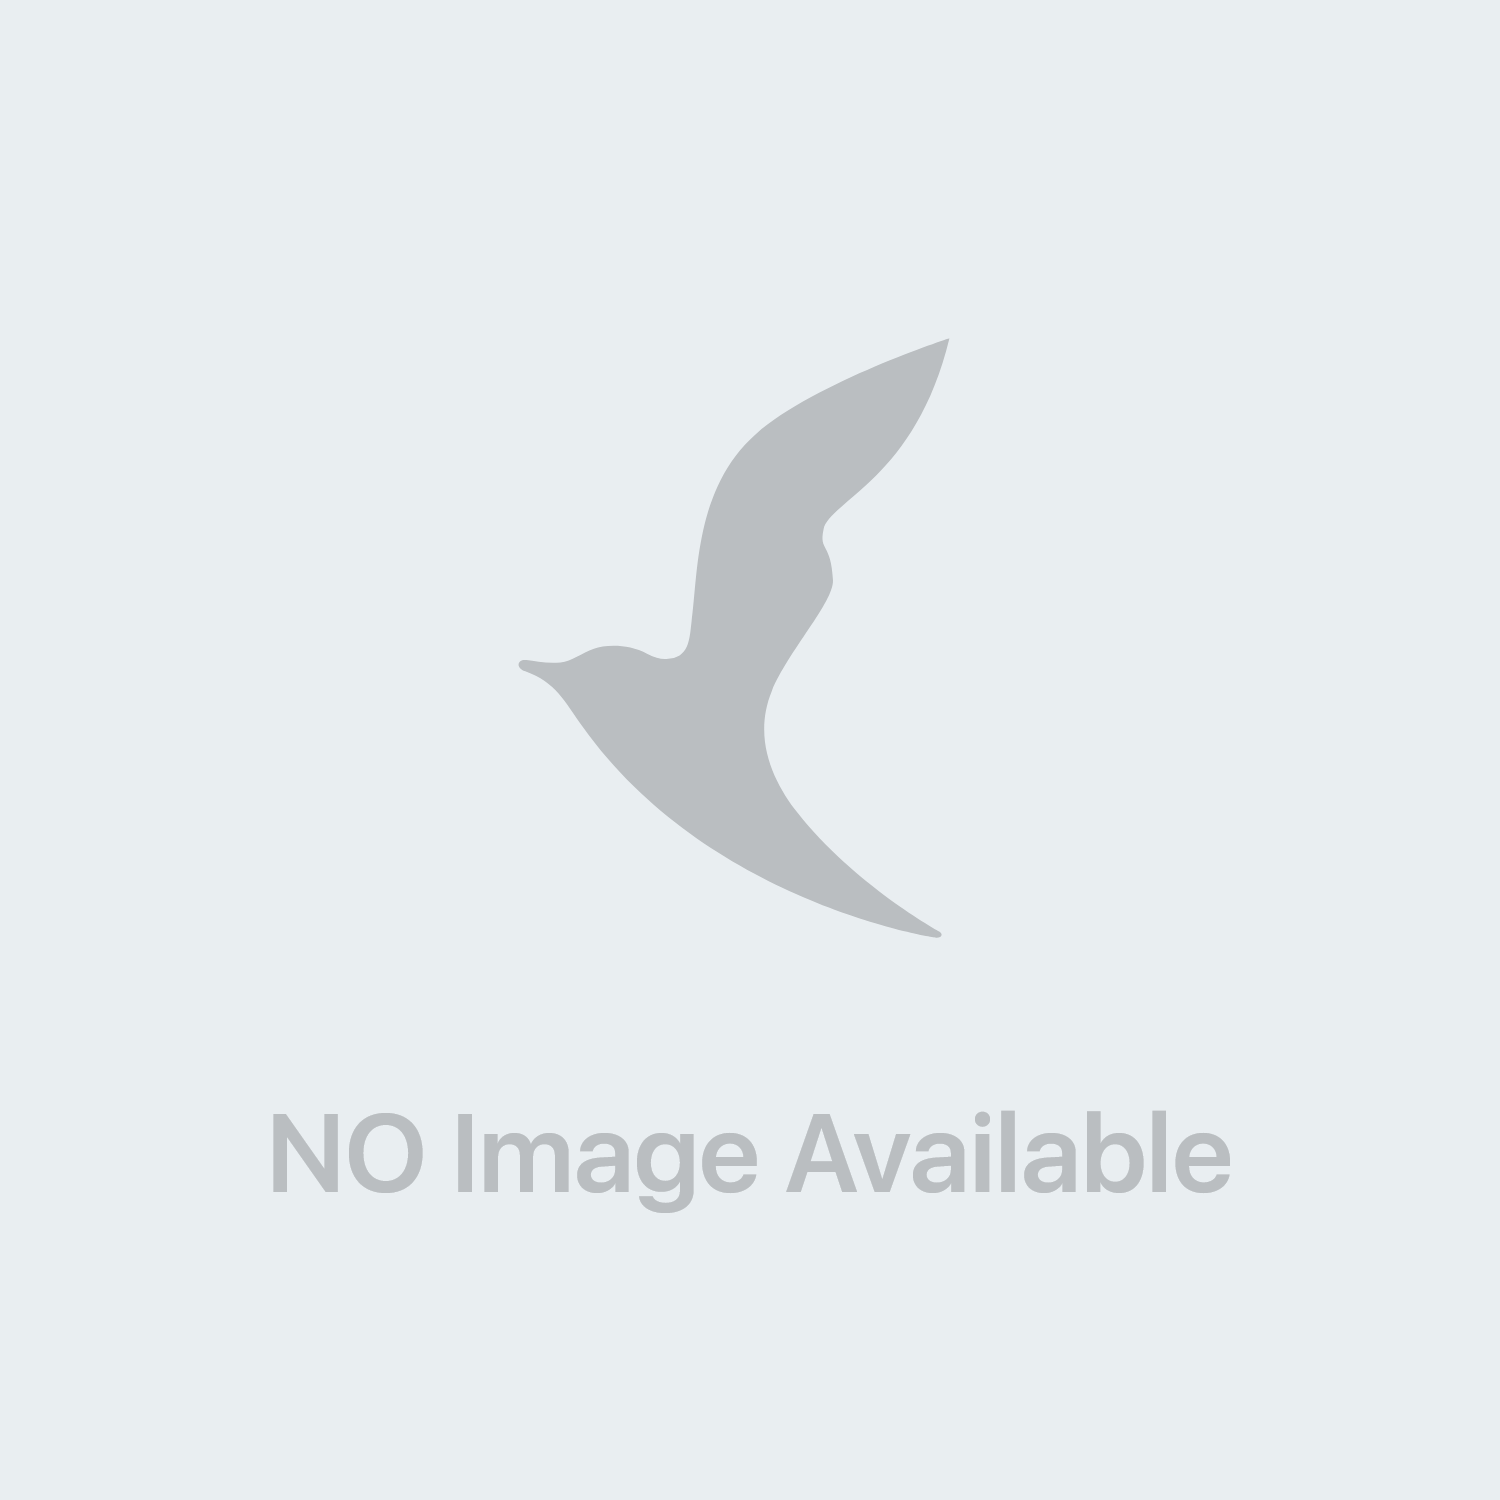 Multicentrum Integratore Multivitaminico Multiminerale 30 Compresse